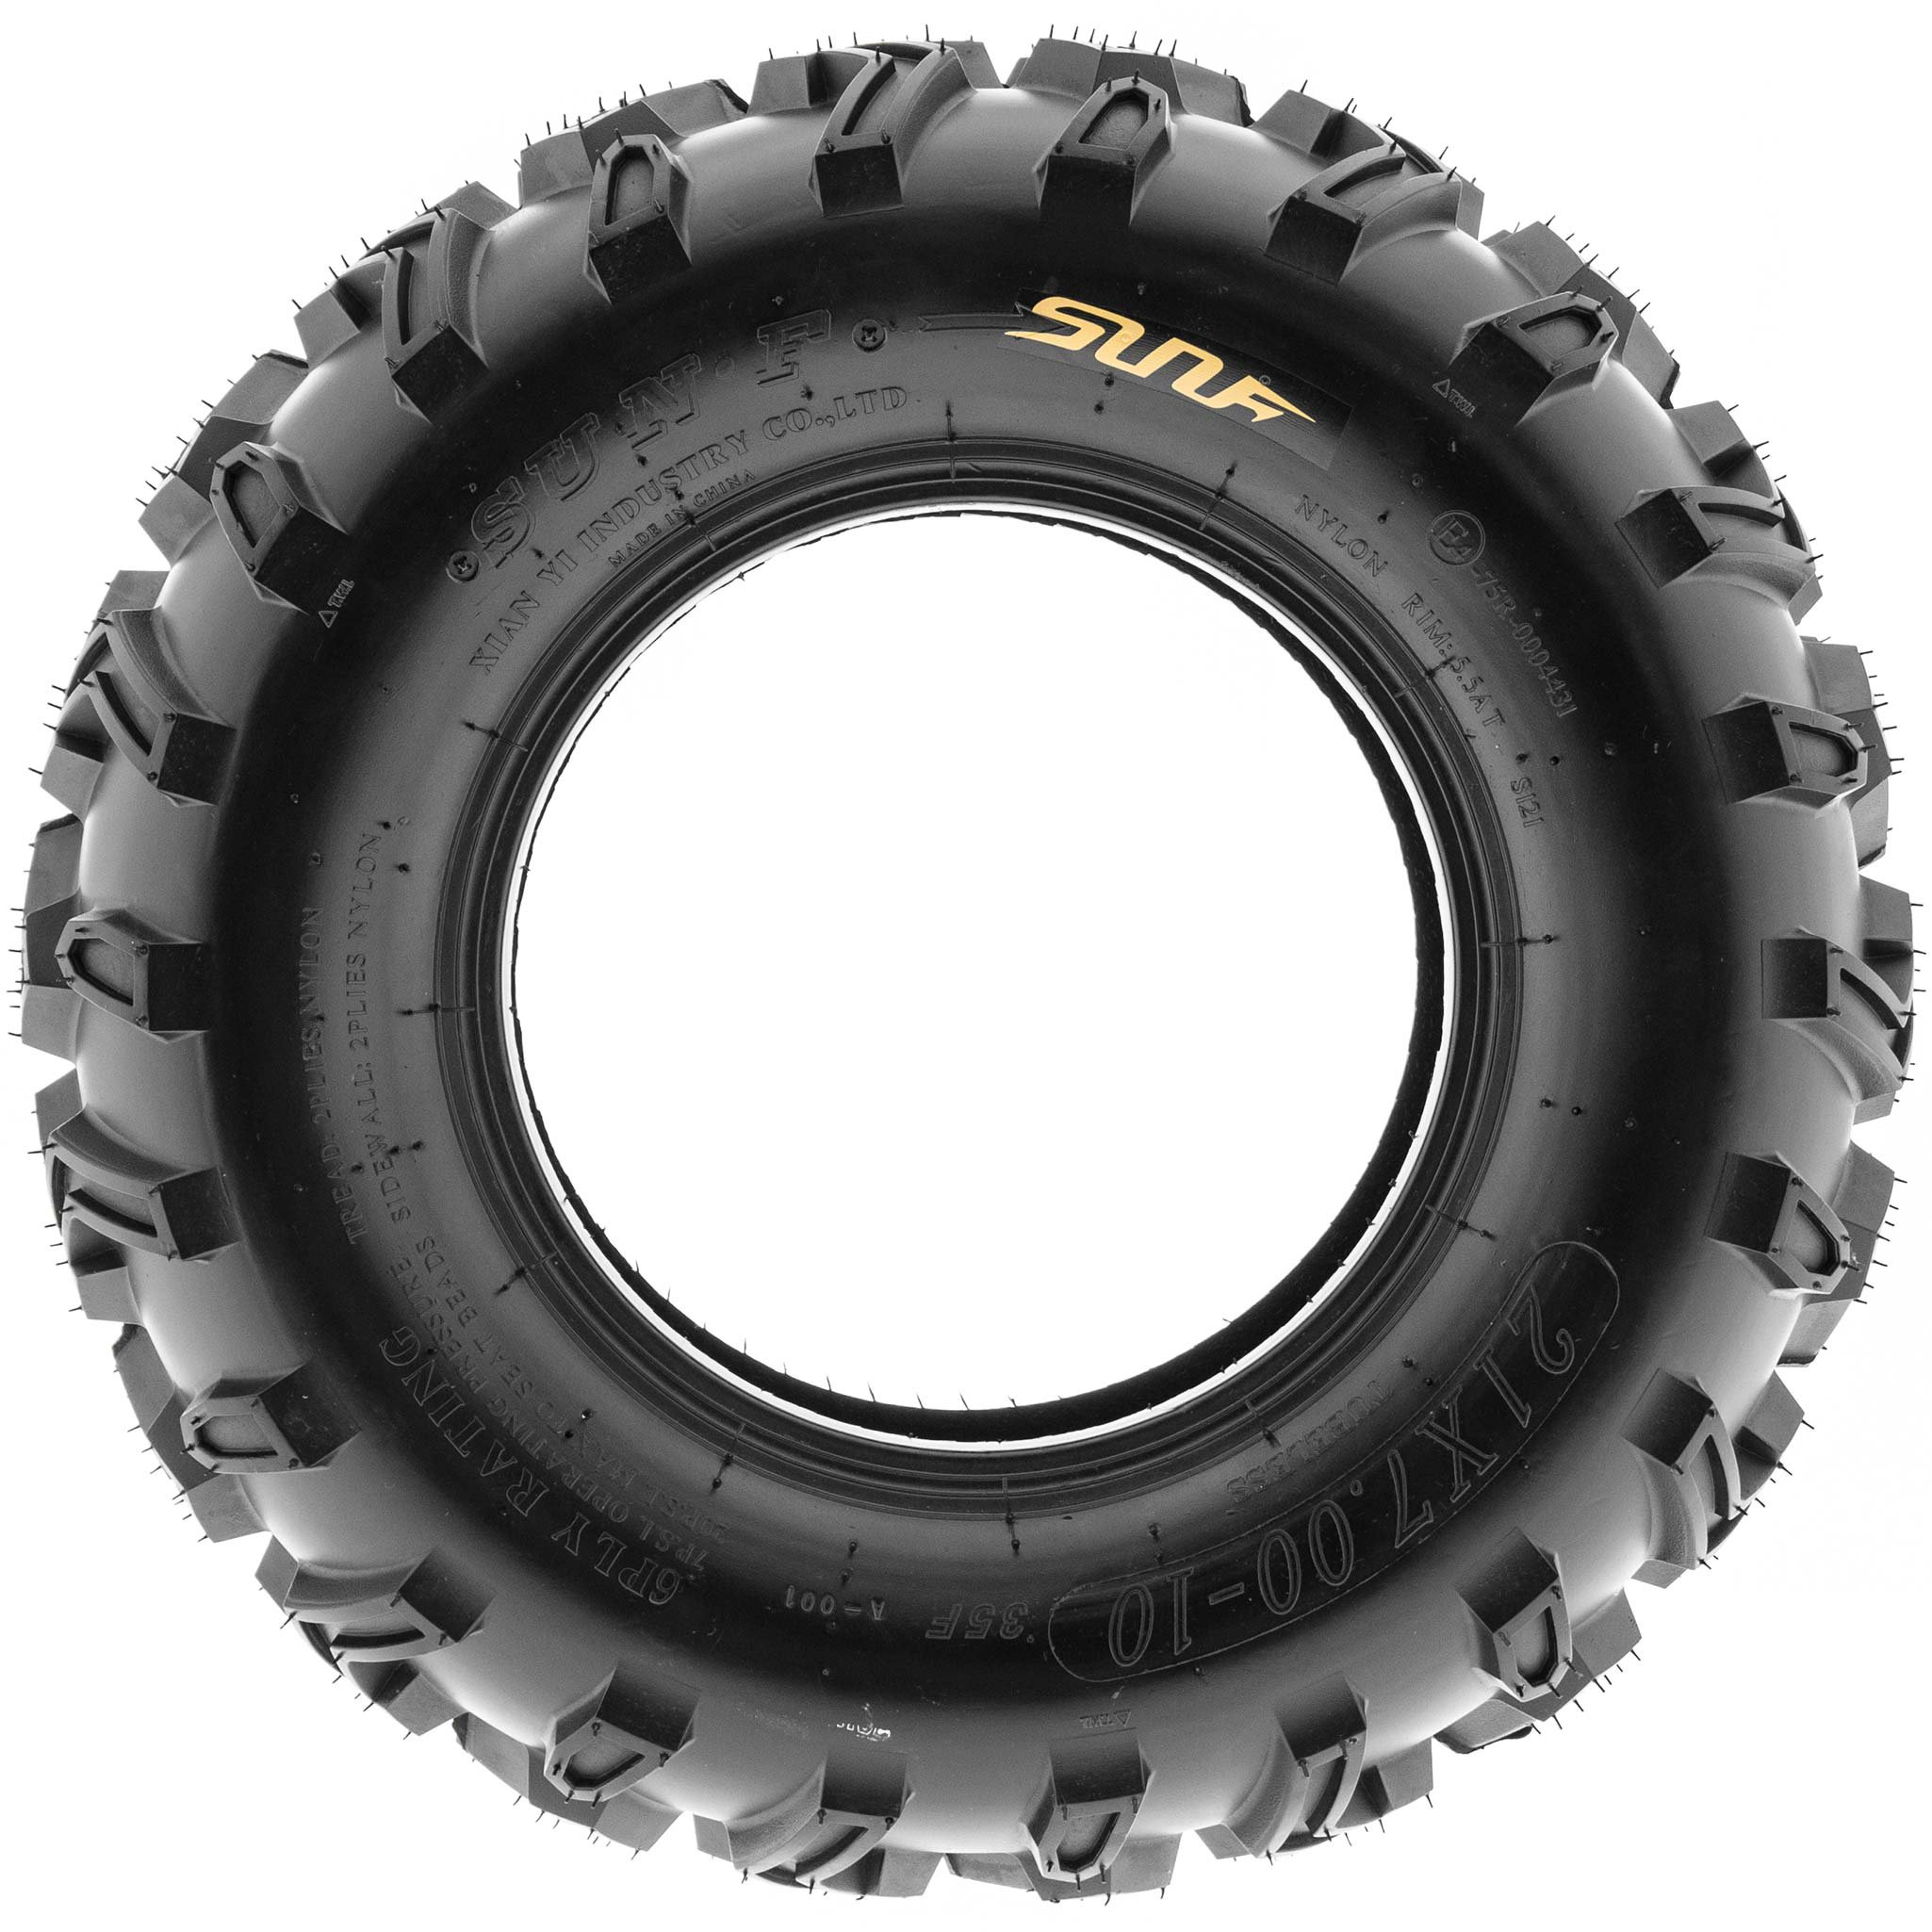 SunF 21x7-10 21x7x10 ATV UTV All Terrain Race Replacement 6 PR Tubeless Tires A001, [Set of 2] by SunF (Image #3)